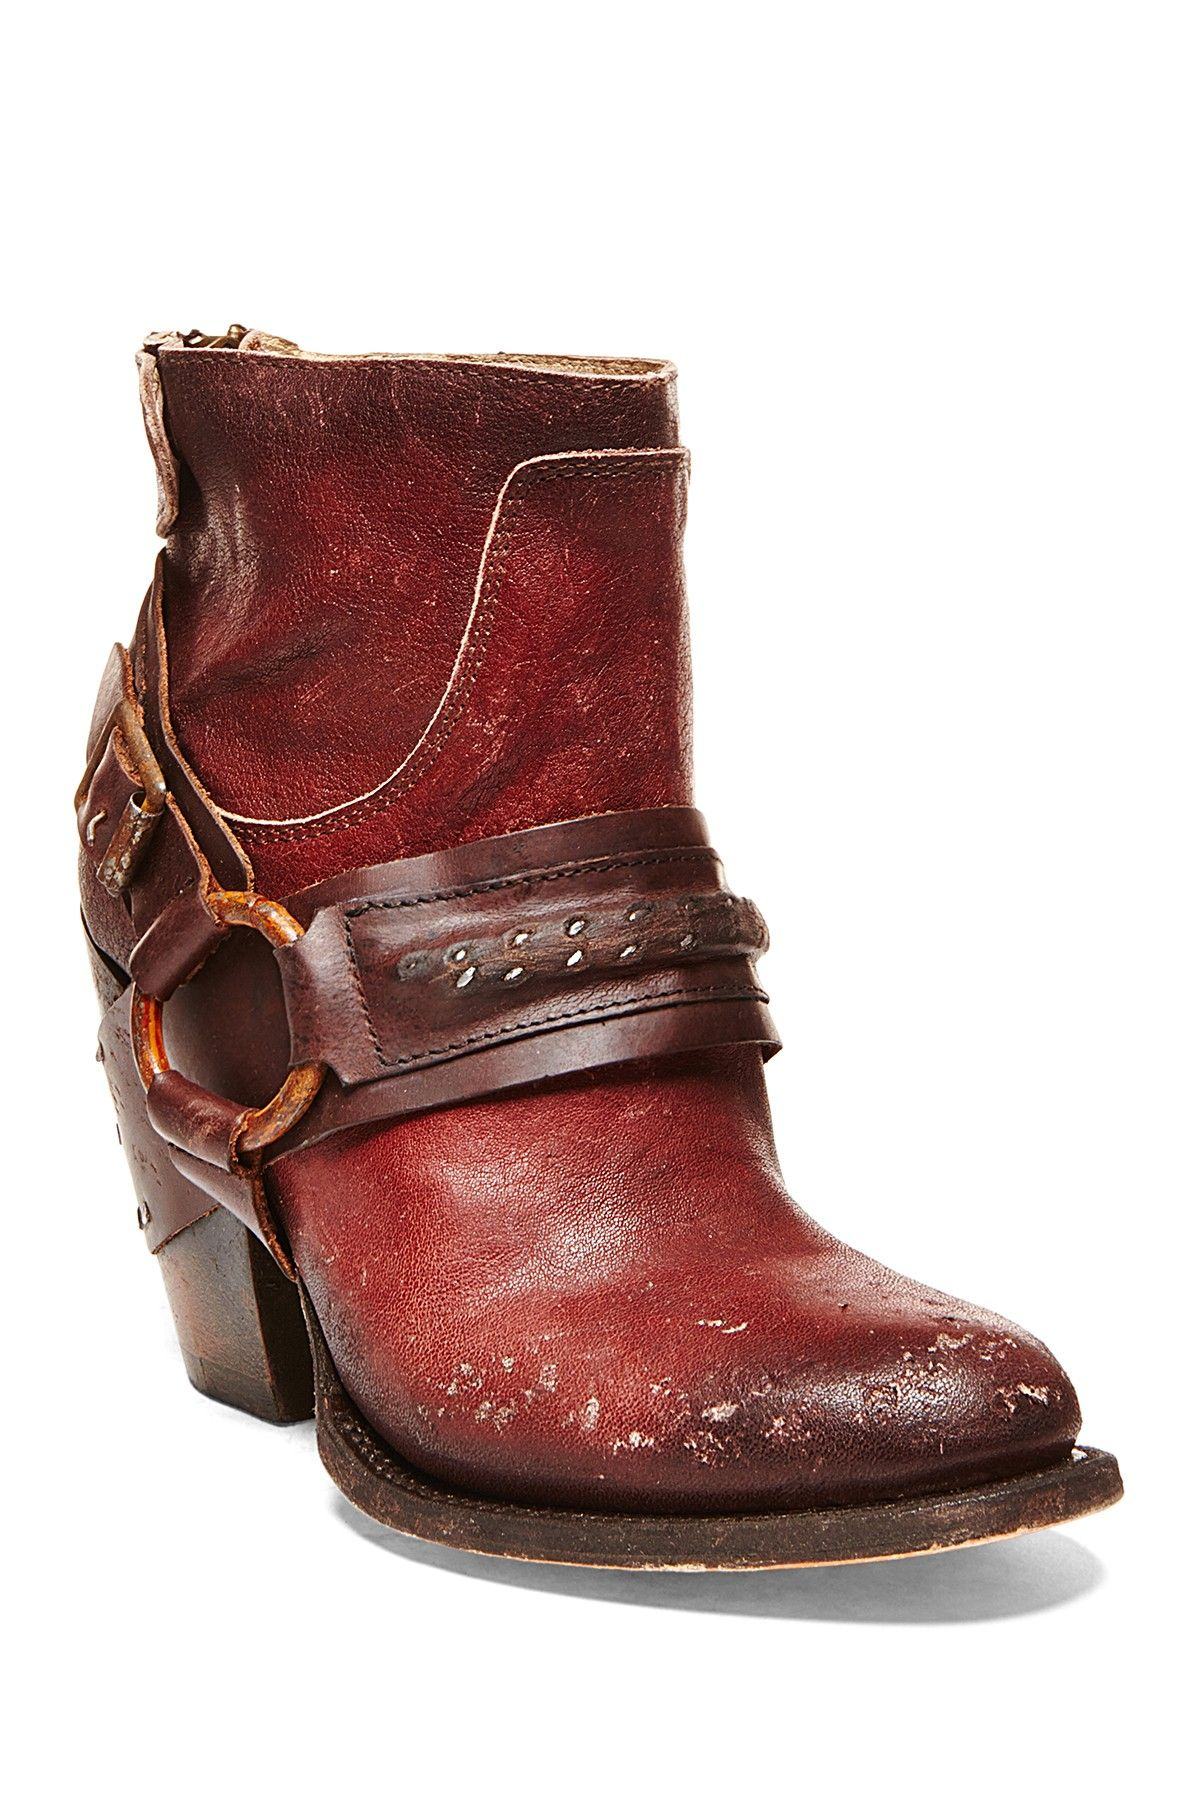 193dbe5d7d2 Freebird by Steven | Elpso Bootie | Boots | Boots, Shoes, Shoe boots